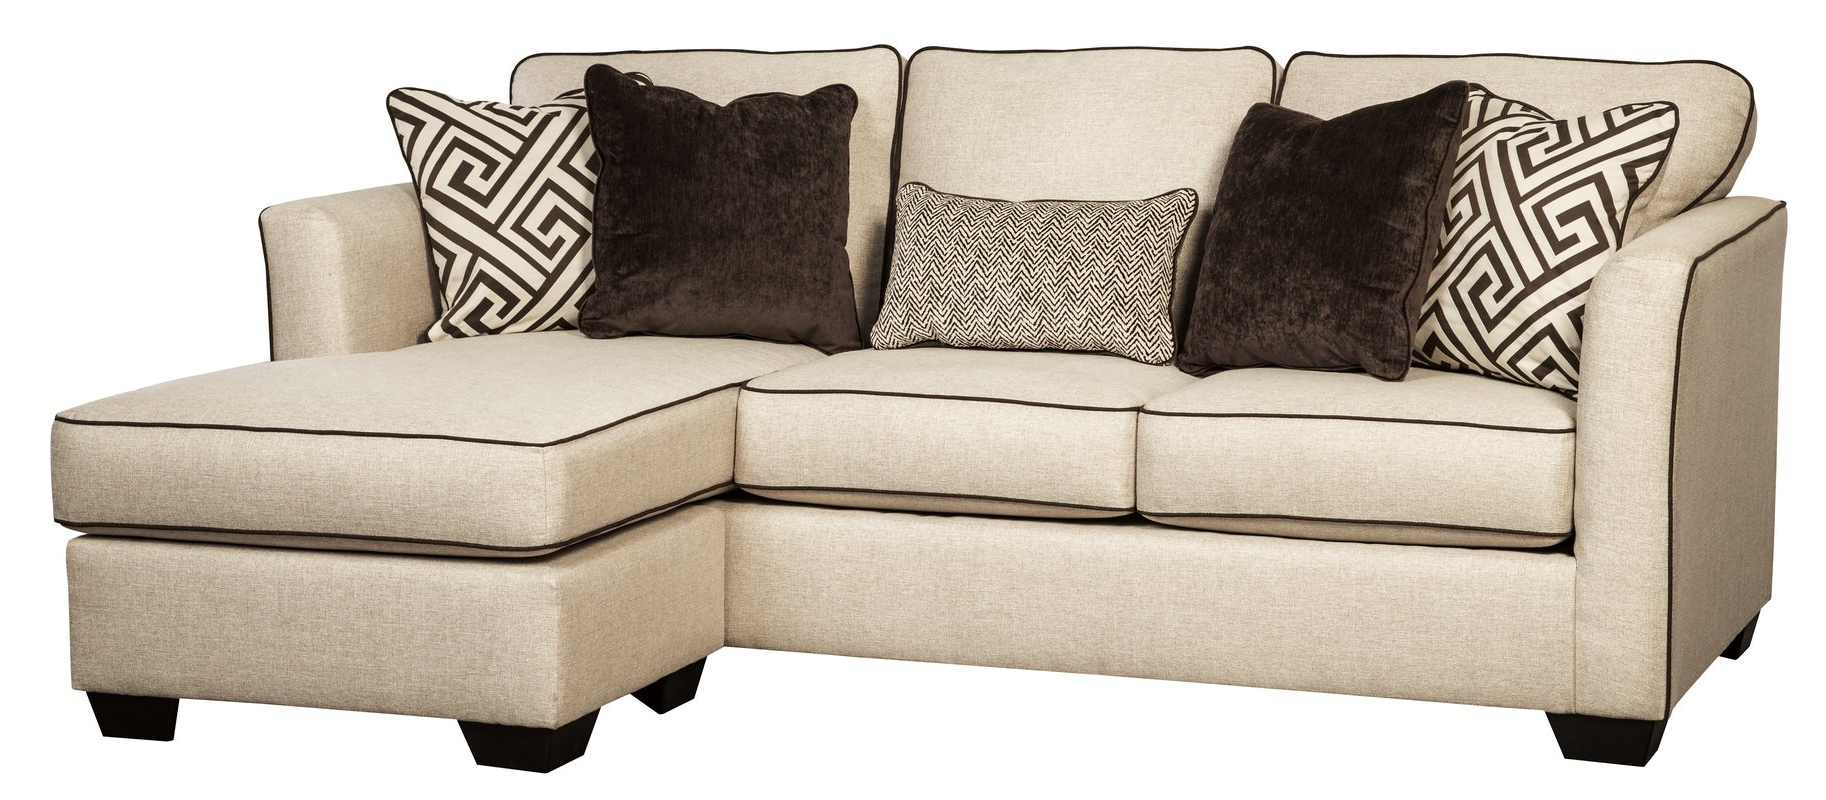 Popular Benchcraft Carlinworth Sofa Chaise Sleeper & Reviews (View 3 of 15)